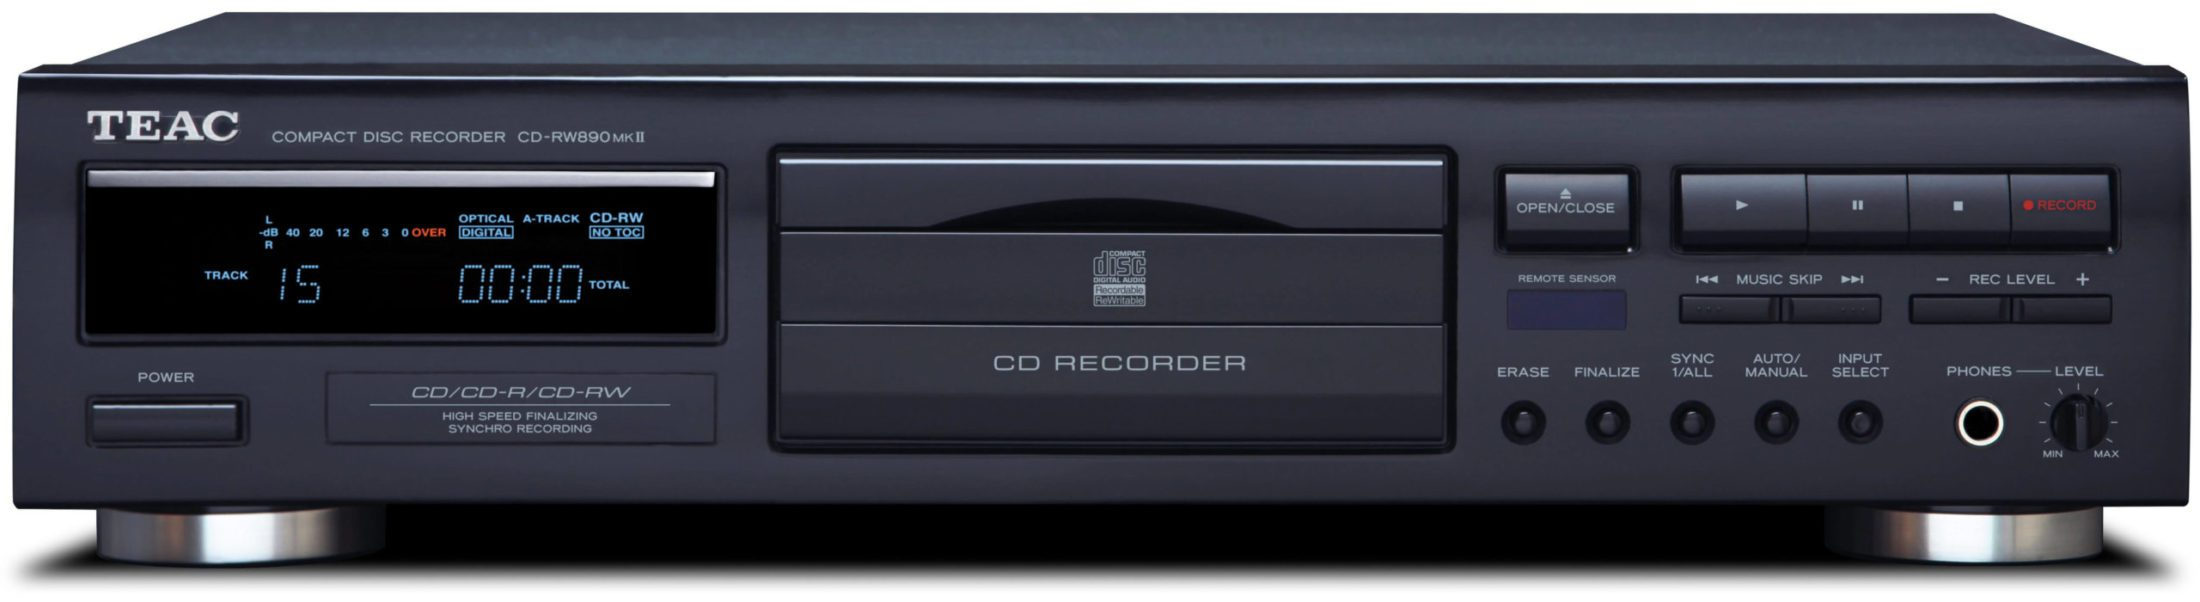 Teac CDRW890MK2 CD Player And Recorder